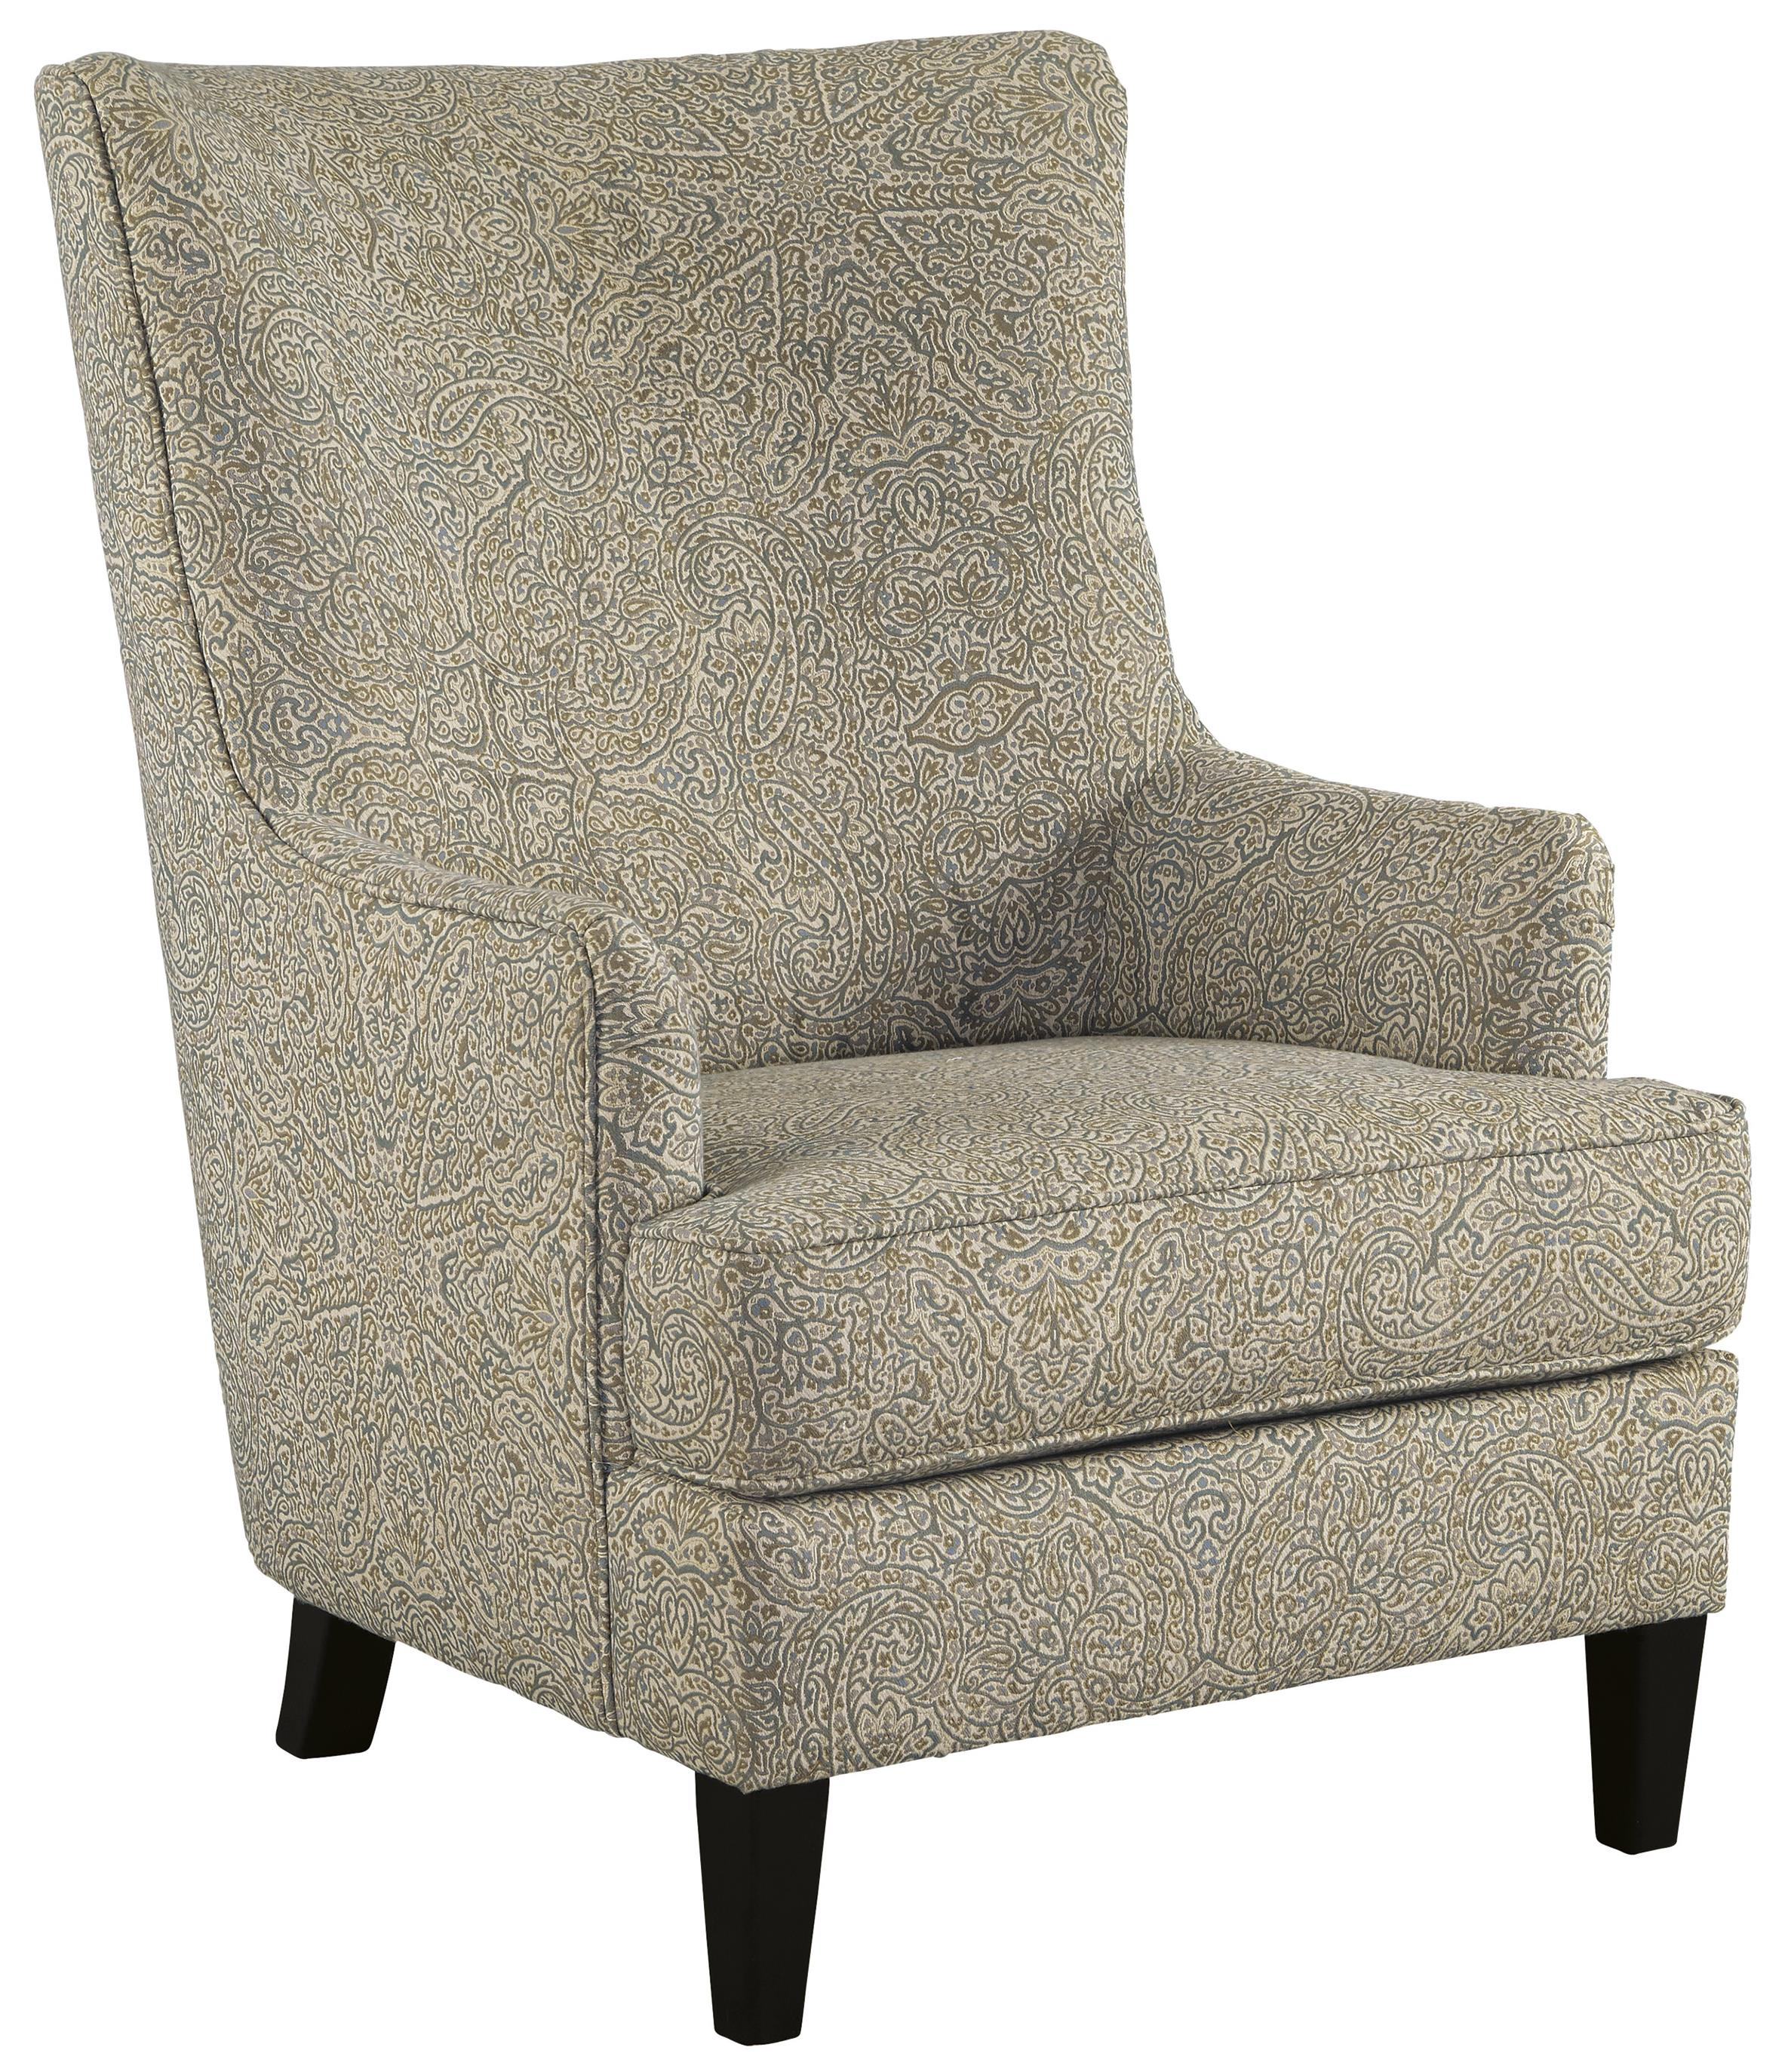 Transtional Accent Chair with Wing Back by Signature Design by